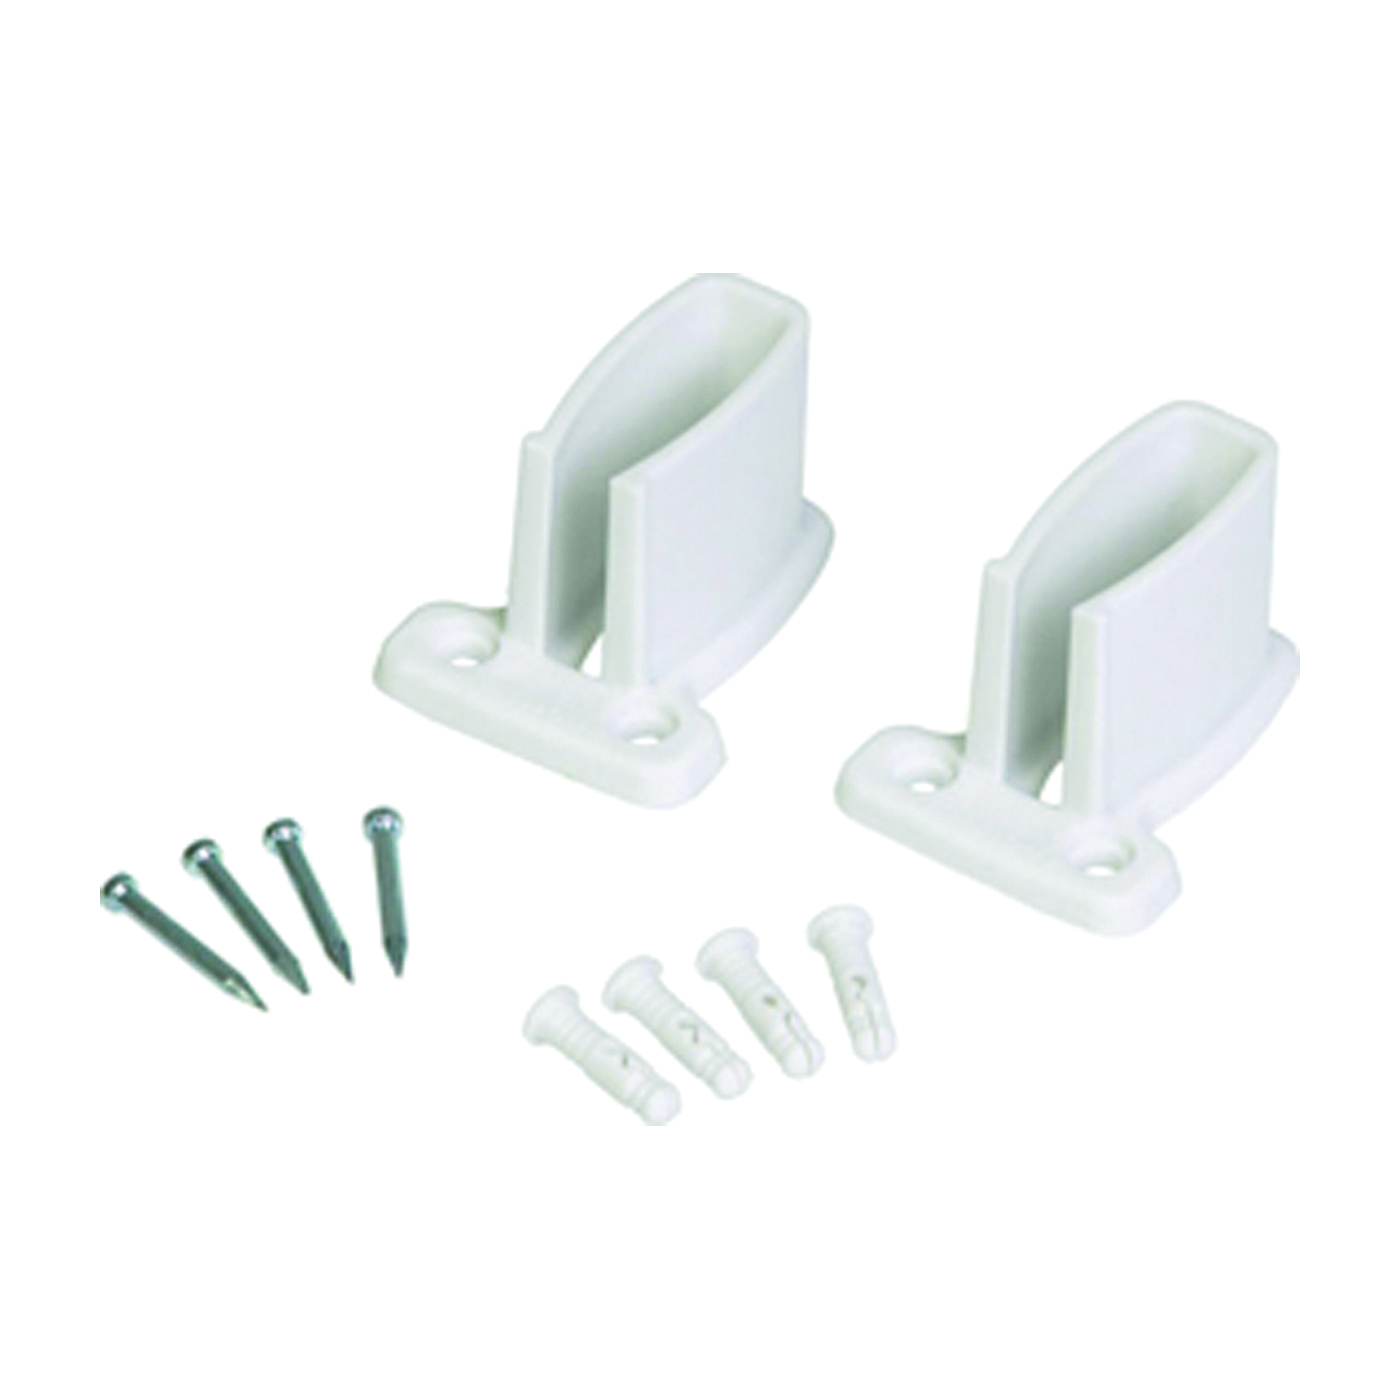 Picture of ClosetMaid 21782 Wall Bracket Bag, 2-1/8 in L, 2-7/8 in H, Resin